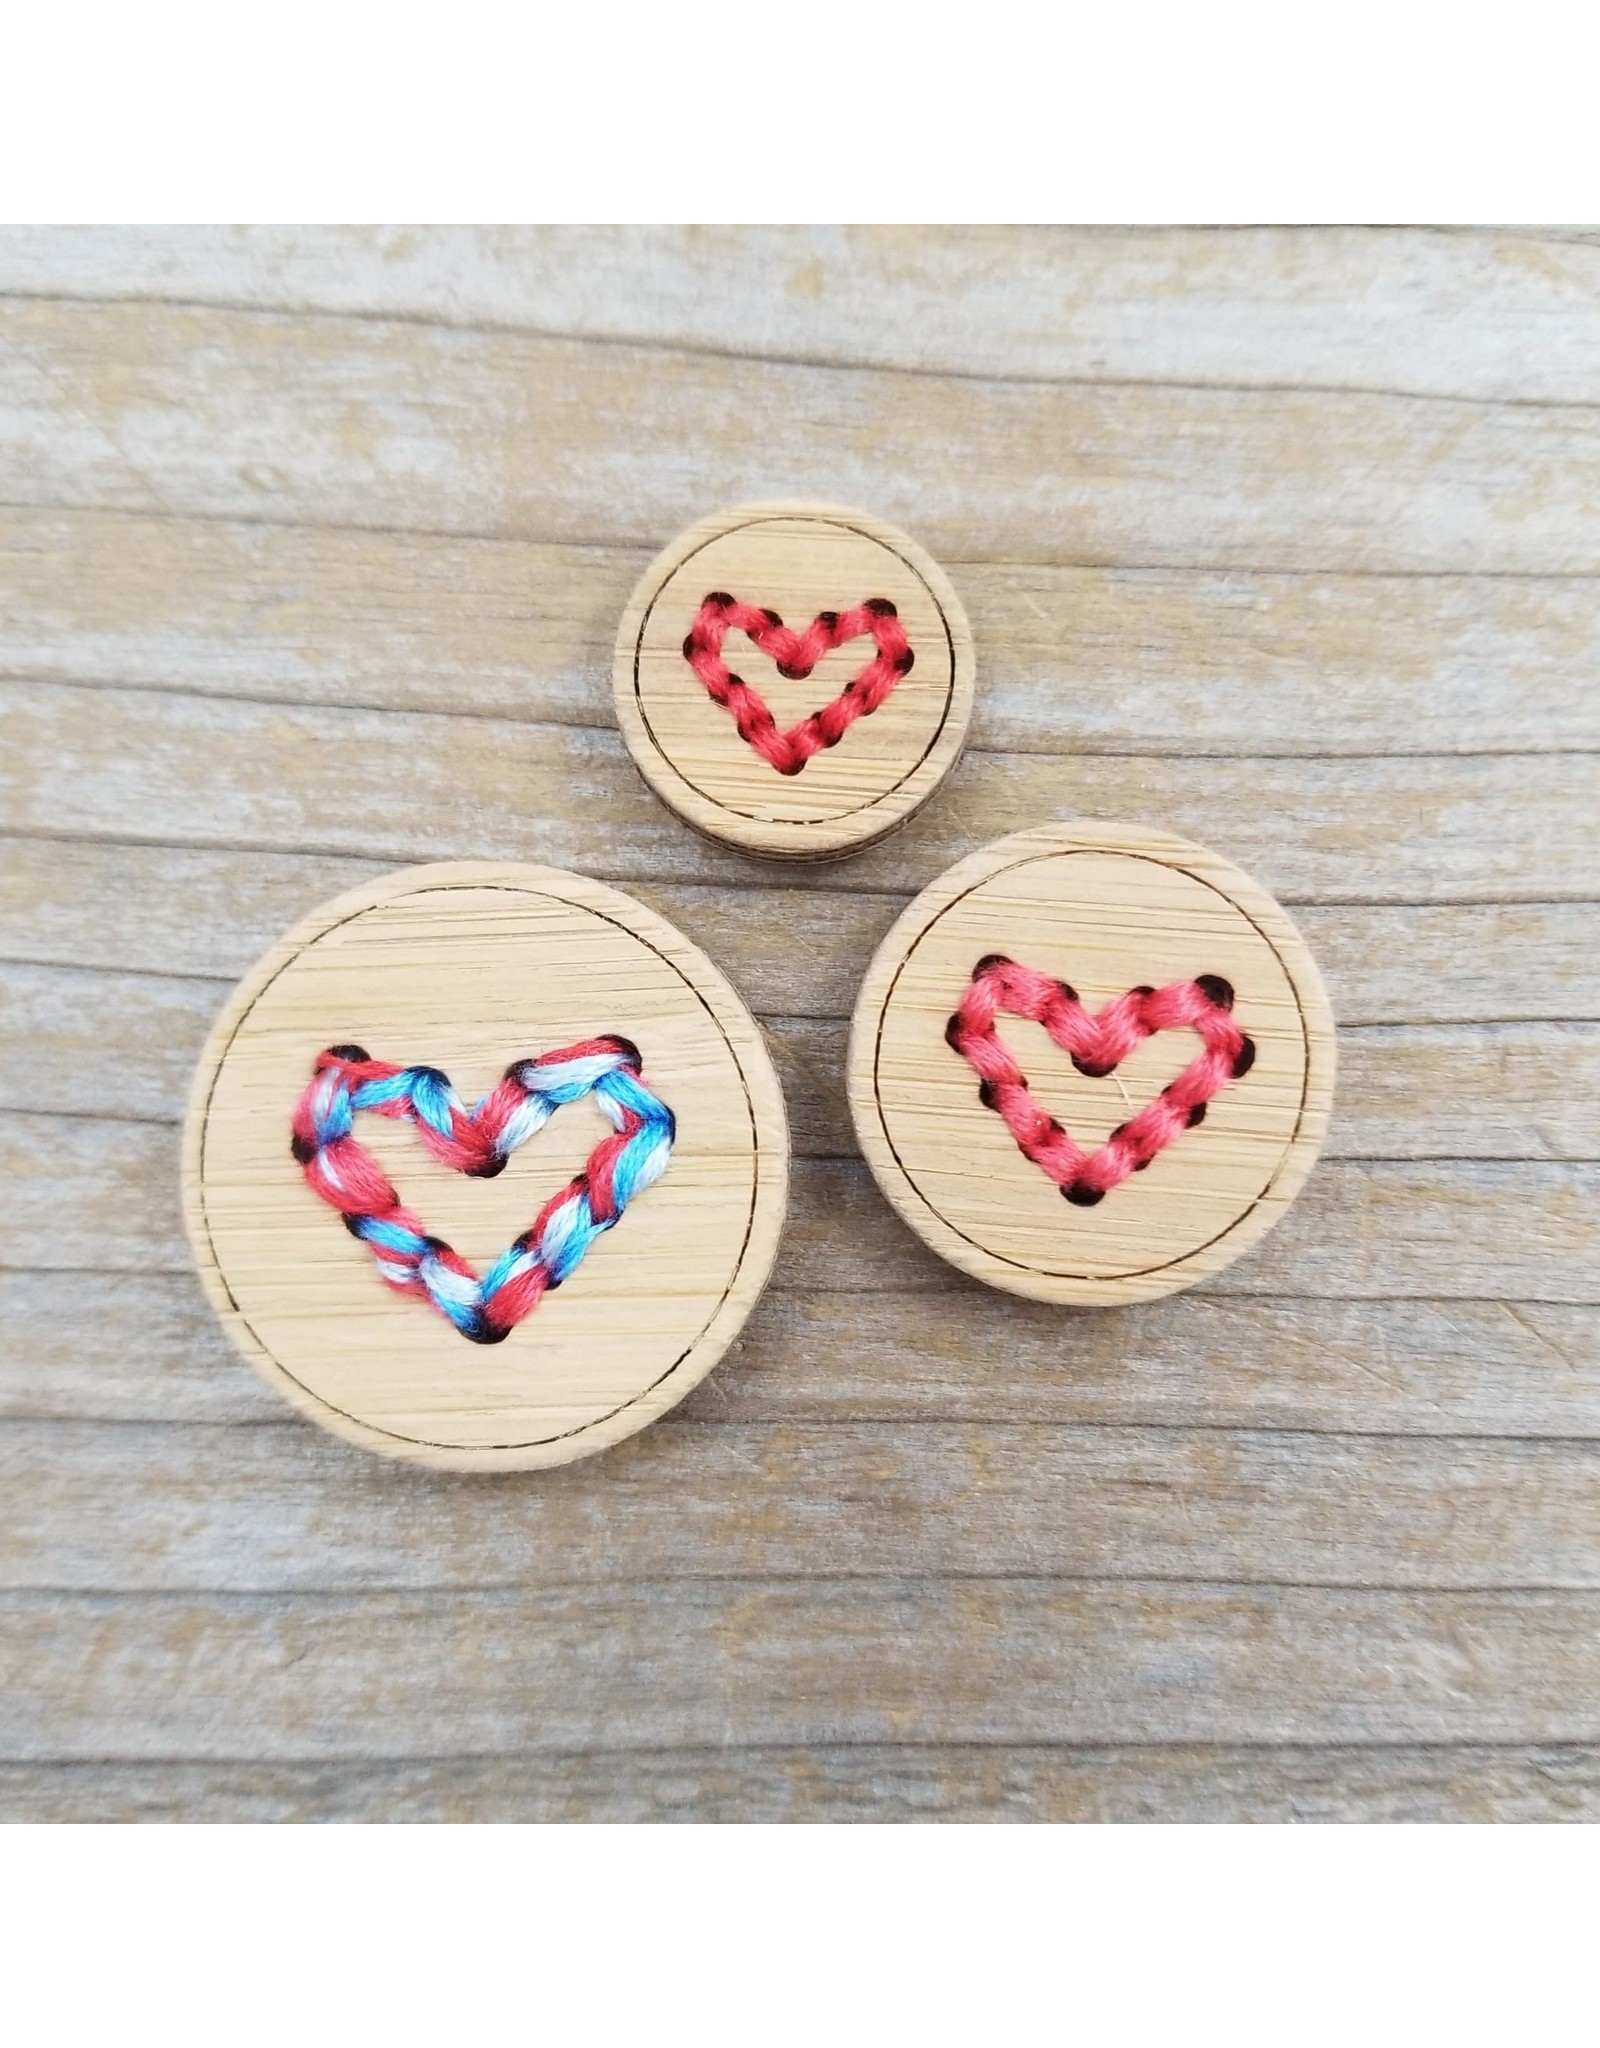 "Heart Button - 1"" single button by Katrinkles"